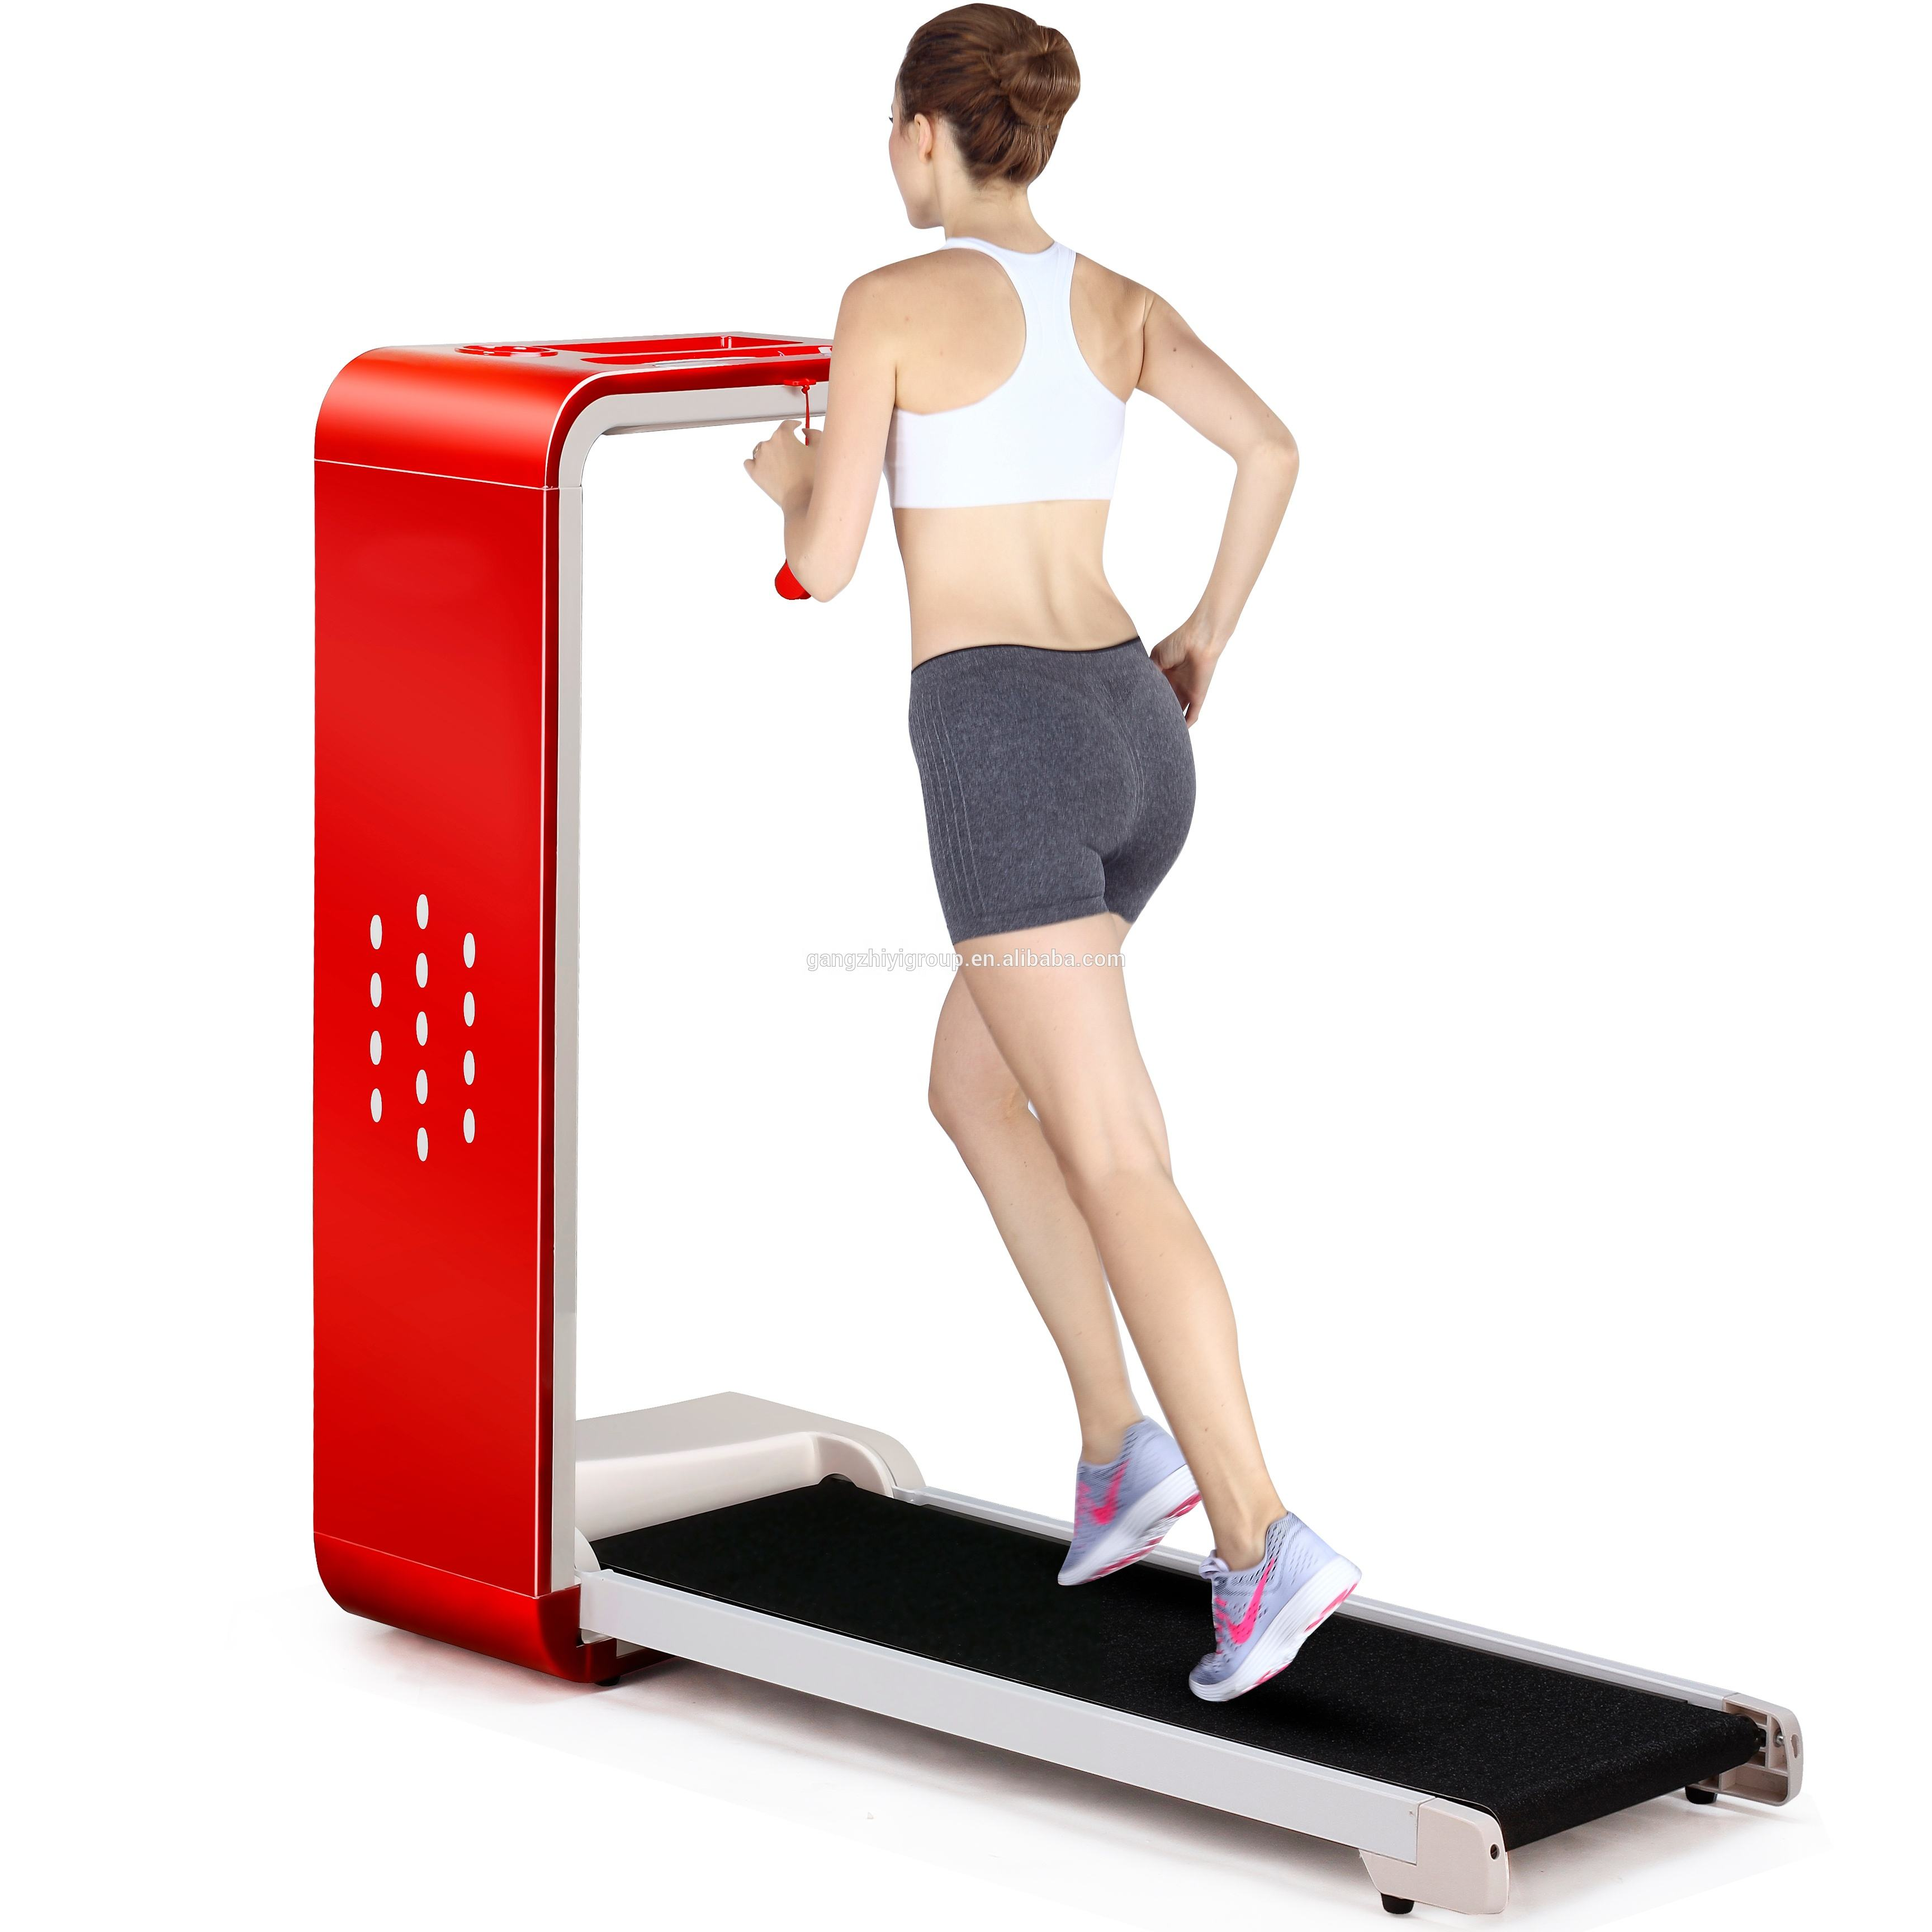 Led display home fitness foldable running machine motorized treadmill